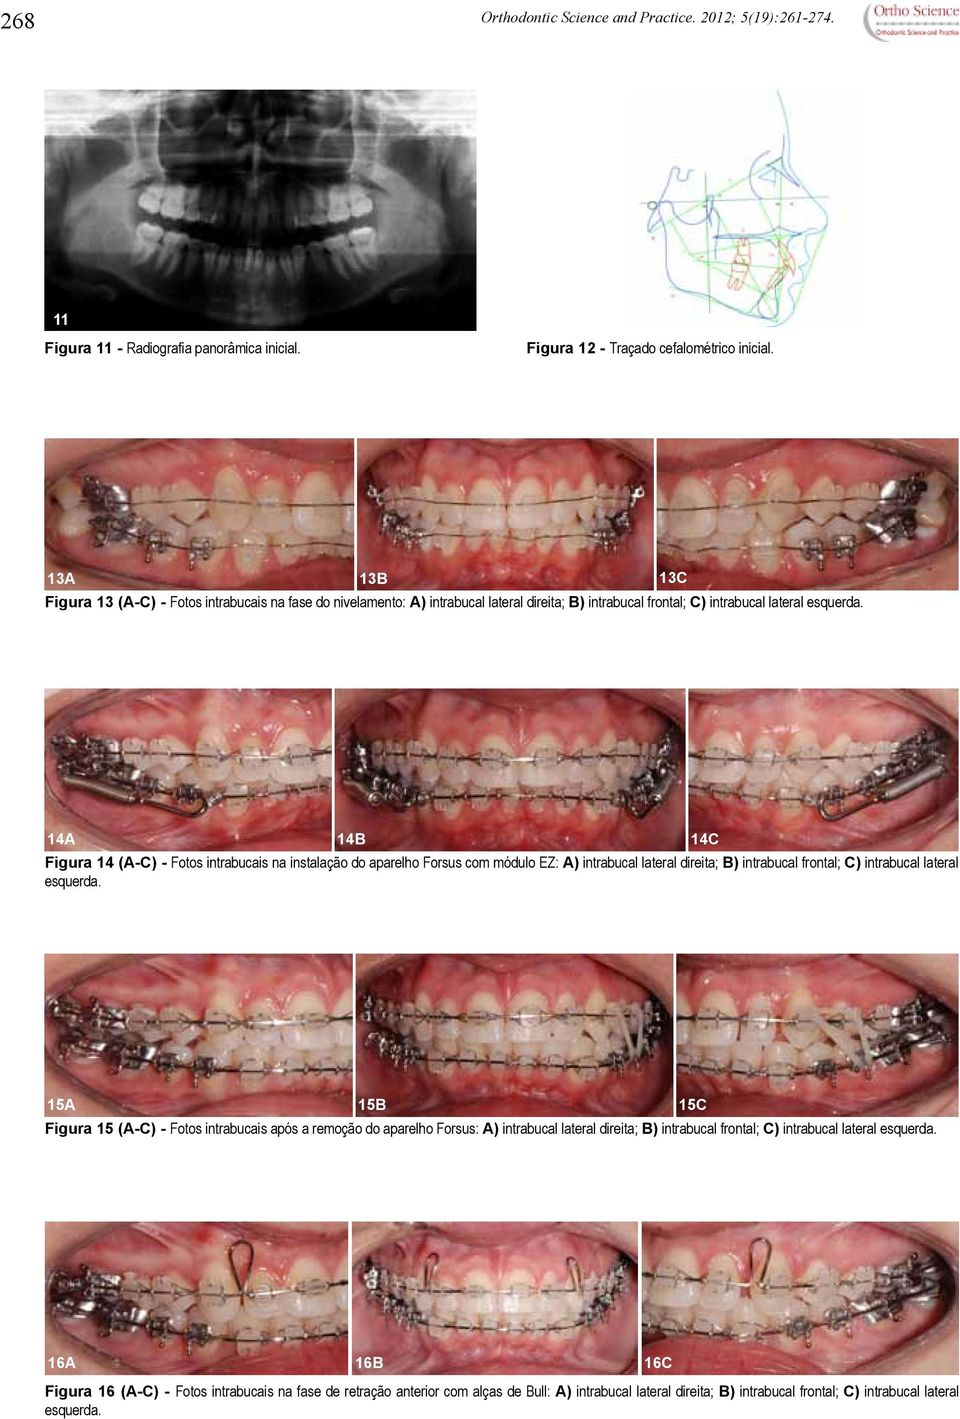 14A 14B Figura 14 (A-C) - Fotos intrabucais na instalação do aparelho Forsus com módulo EZ: A) intrabucal lateral direita; B) intrabucal frontal; C) intrabucal lateral esquerda.